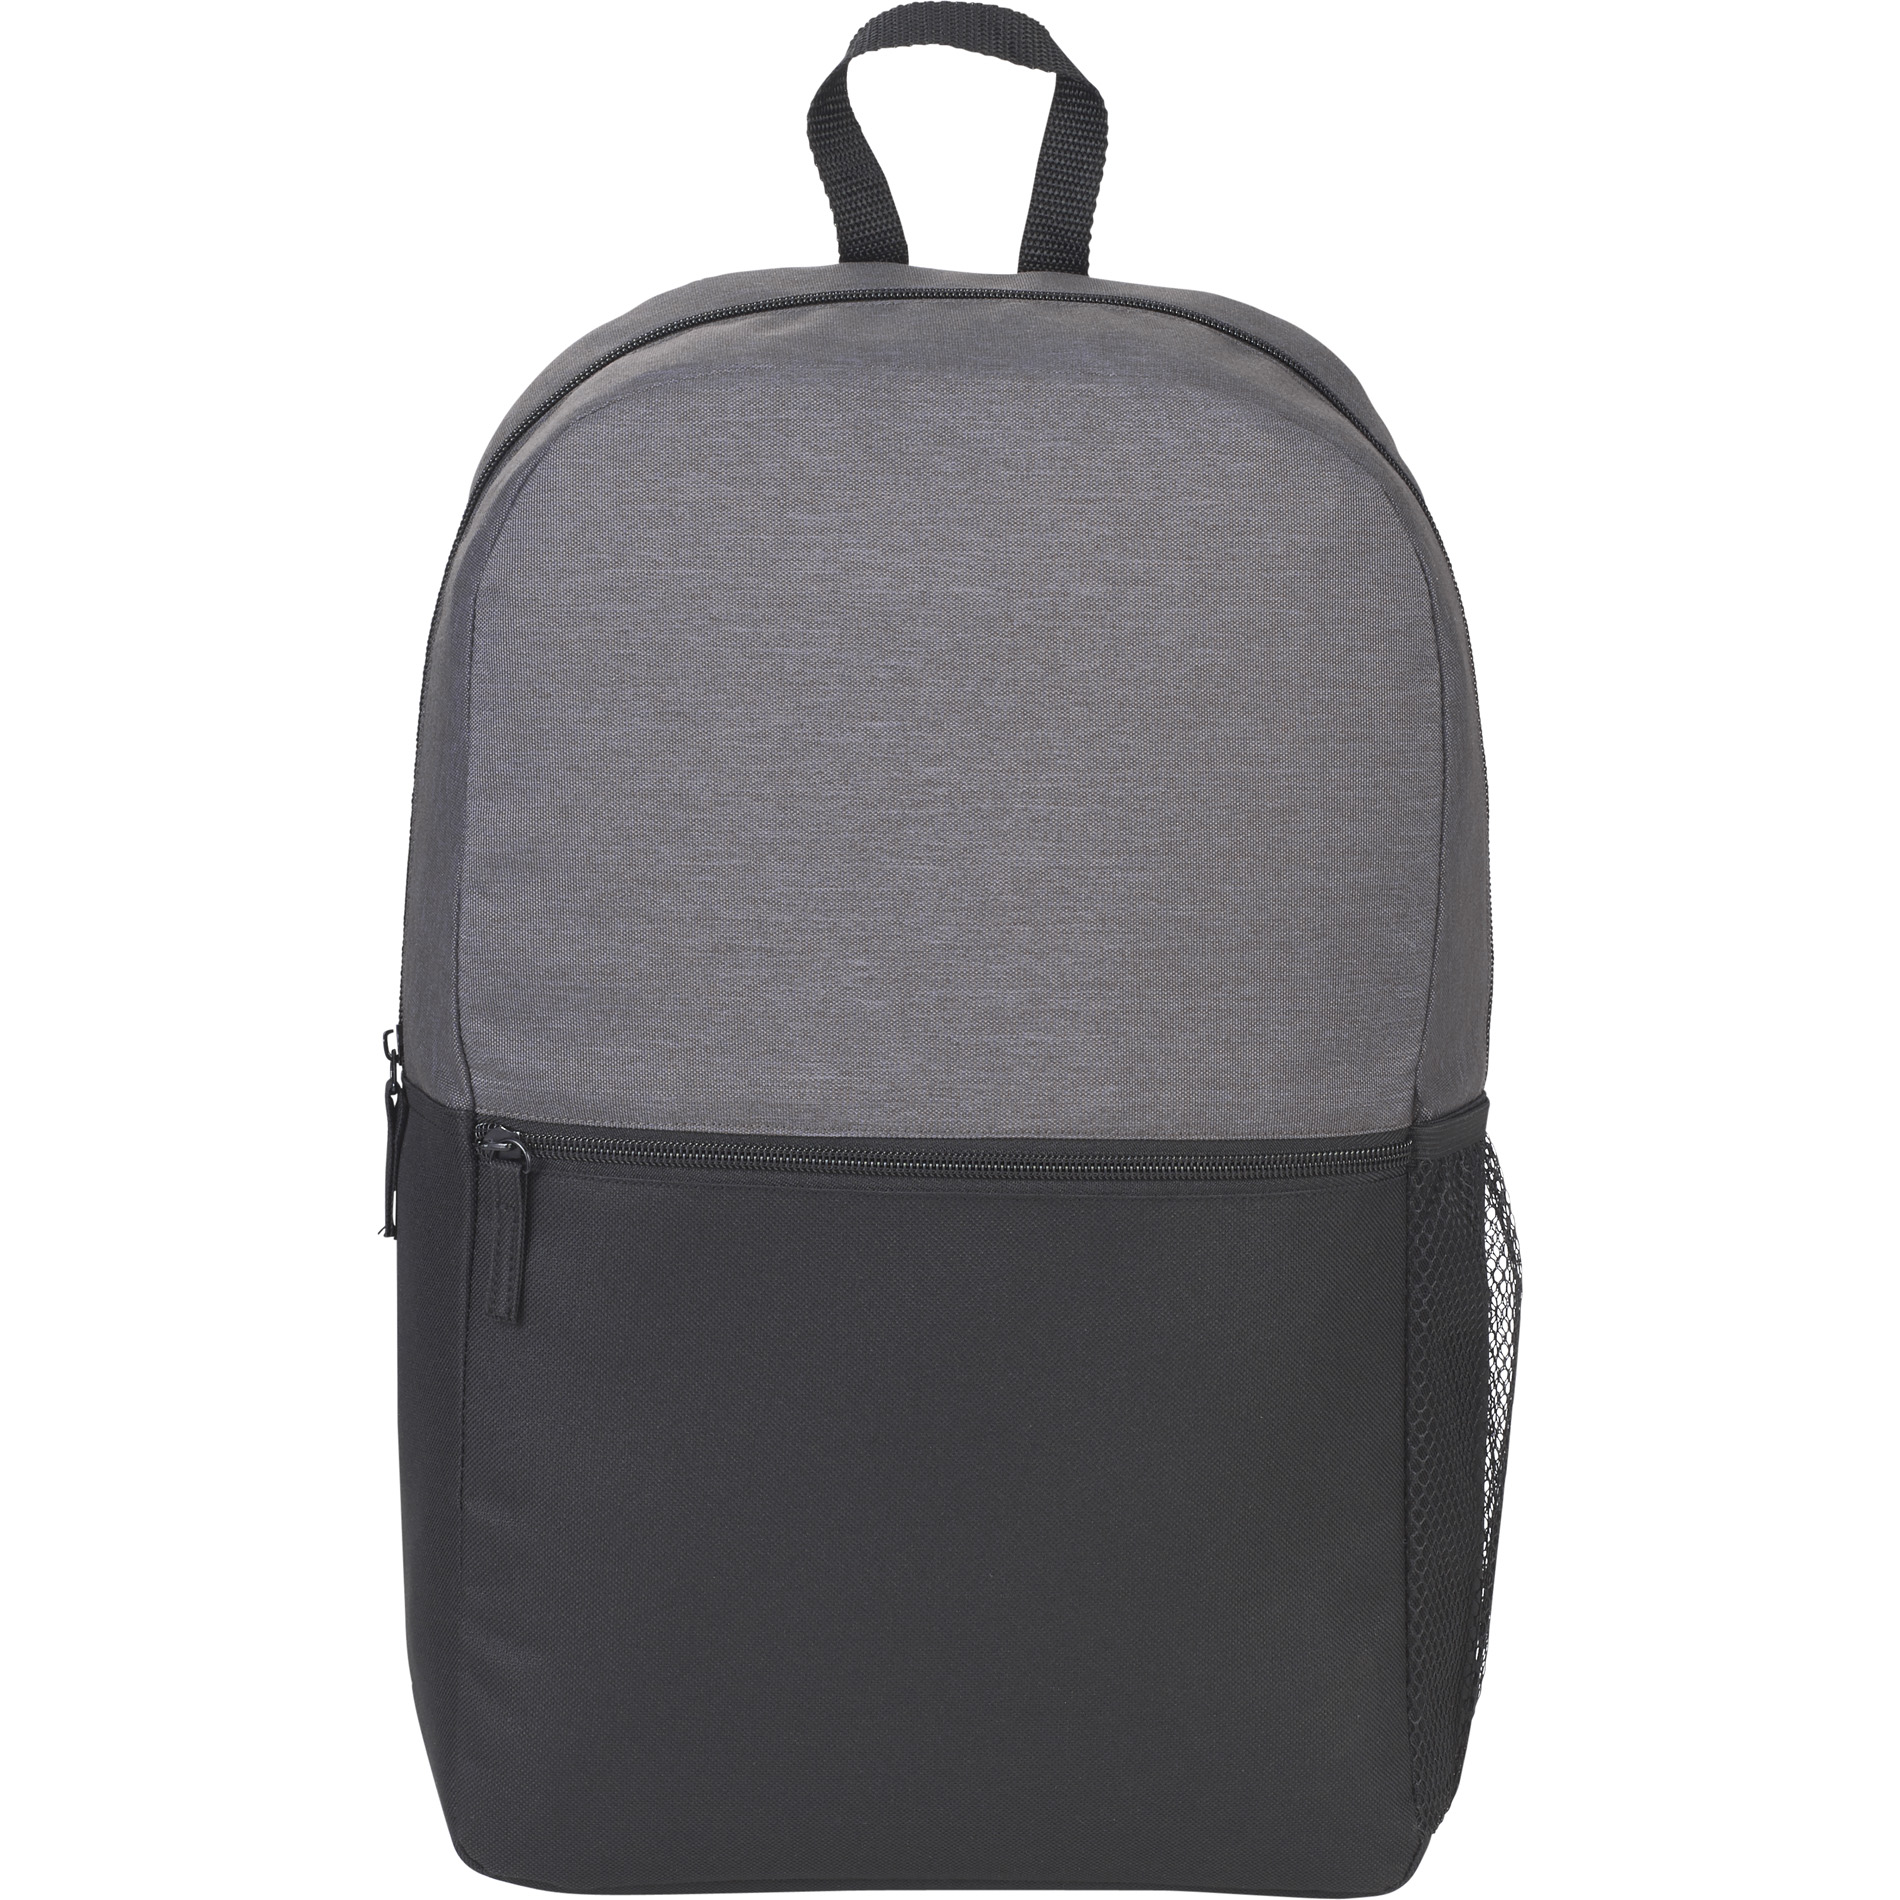 LEEDS 3450-63 - Merlin Backpack